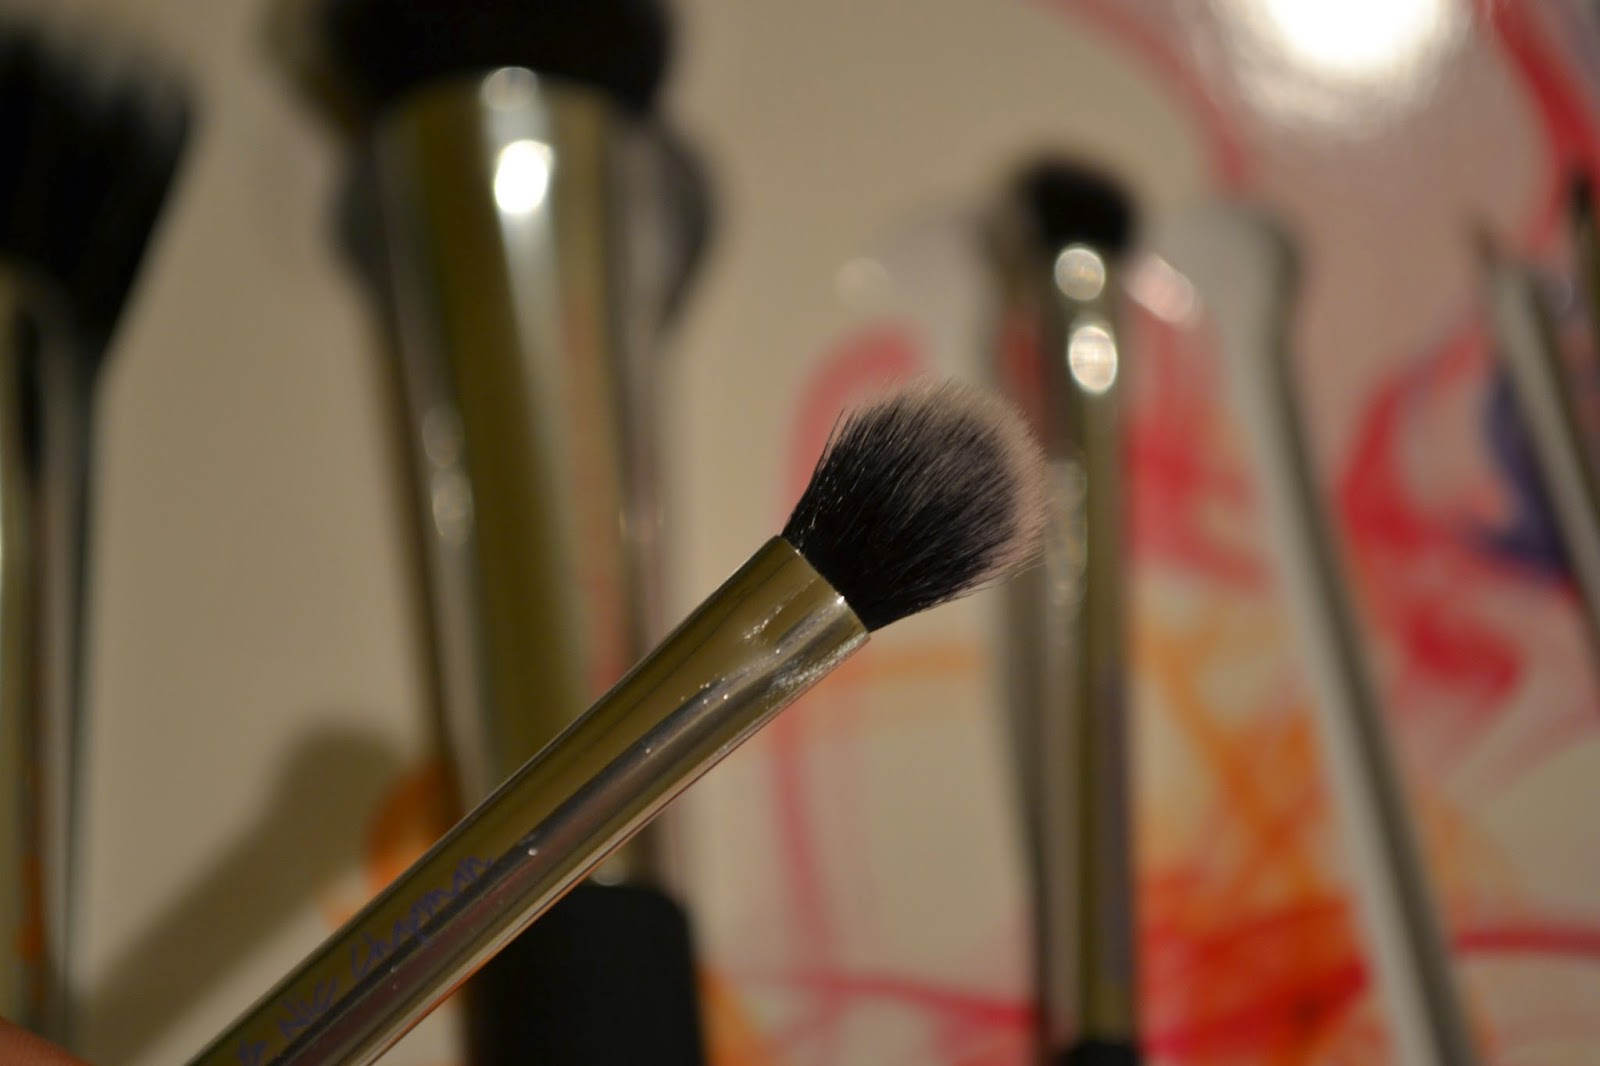 Real Techniques Nic's Picks Brush set - base shadow brush